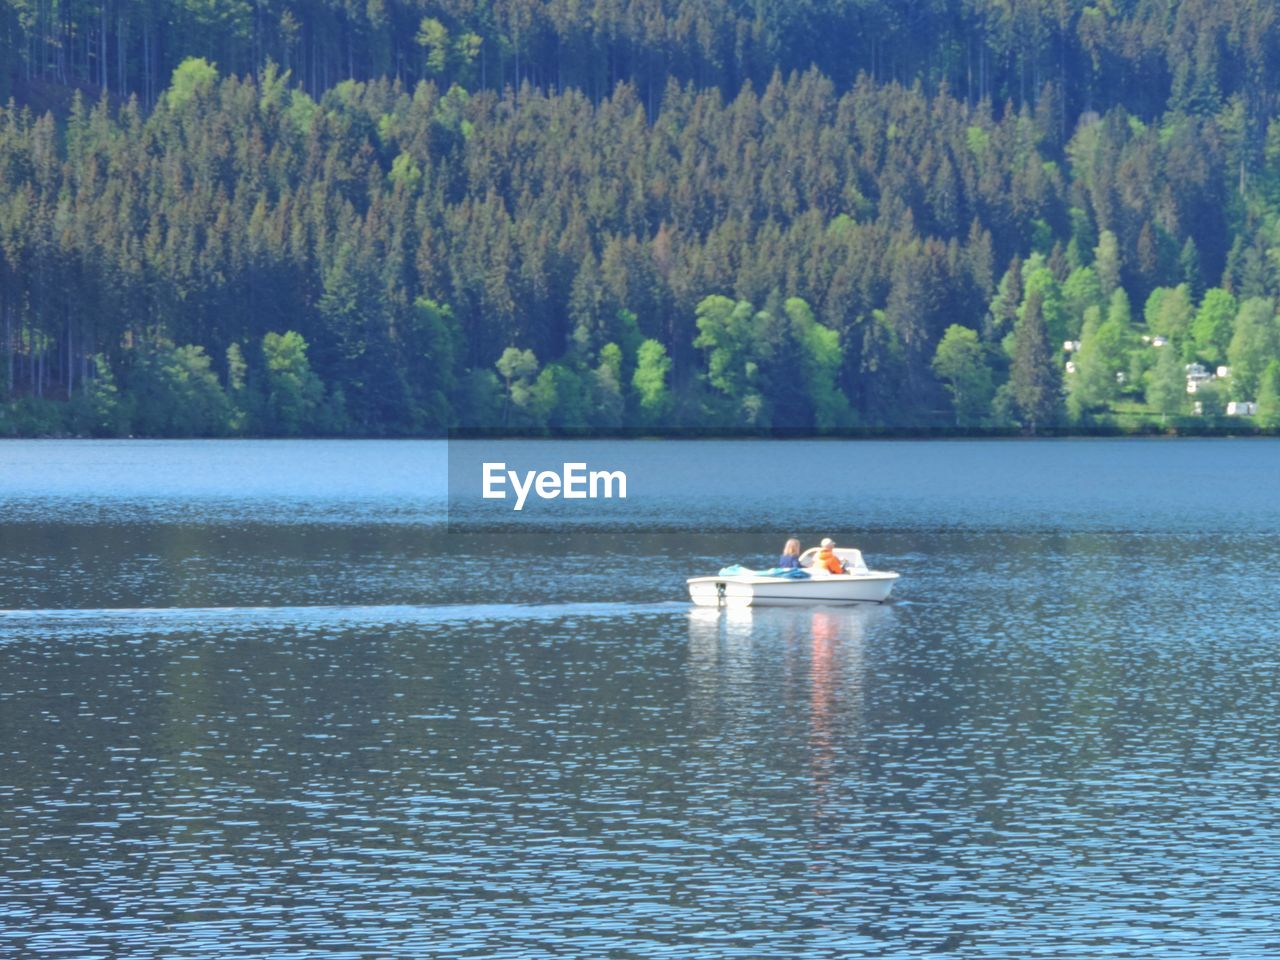 water, nautical vessel, tree, transportation, lake, mode of transportation, plant, waterfront, scenics - nature, day, beauty in nature, real people, nature, two people, men, tranquility, forest, non-urban scene, outdoors, rowboat